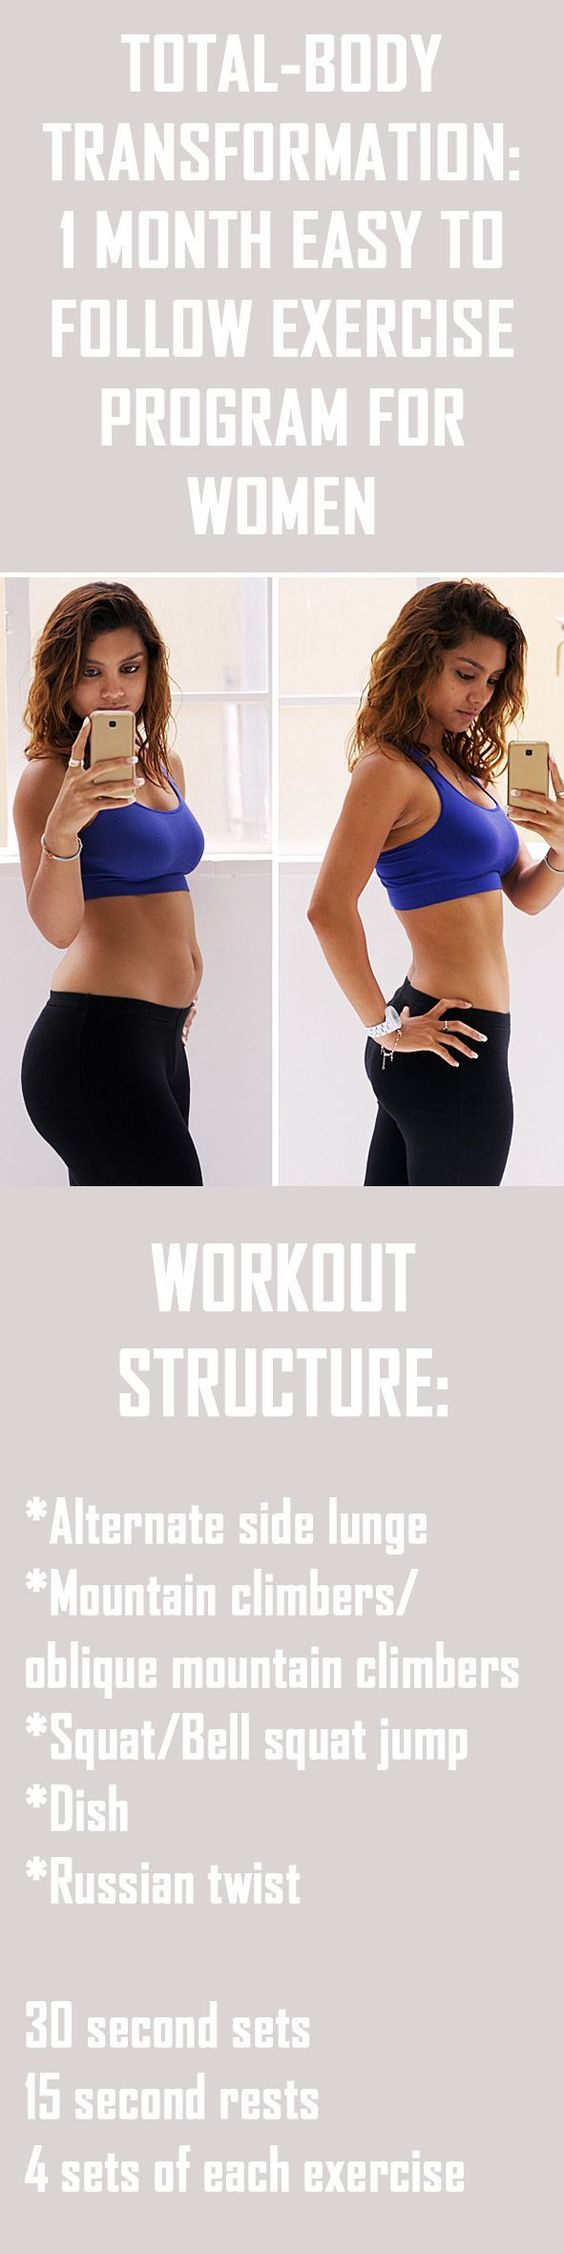 Total Body Transformation: 1 Month easy to follow exercise program for women